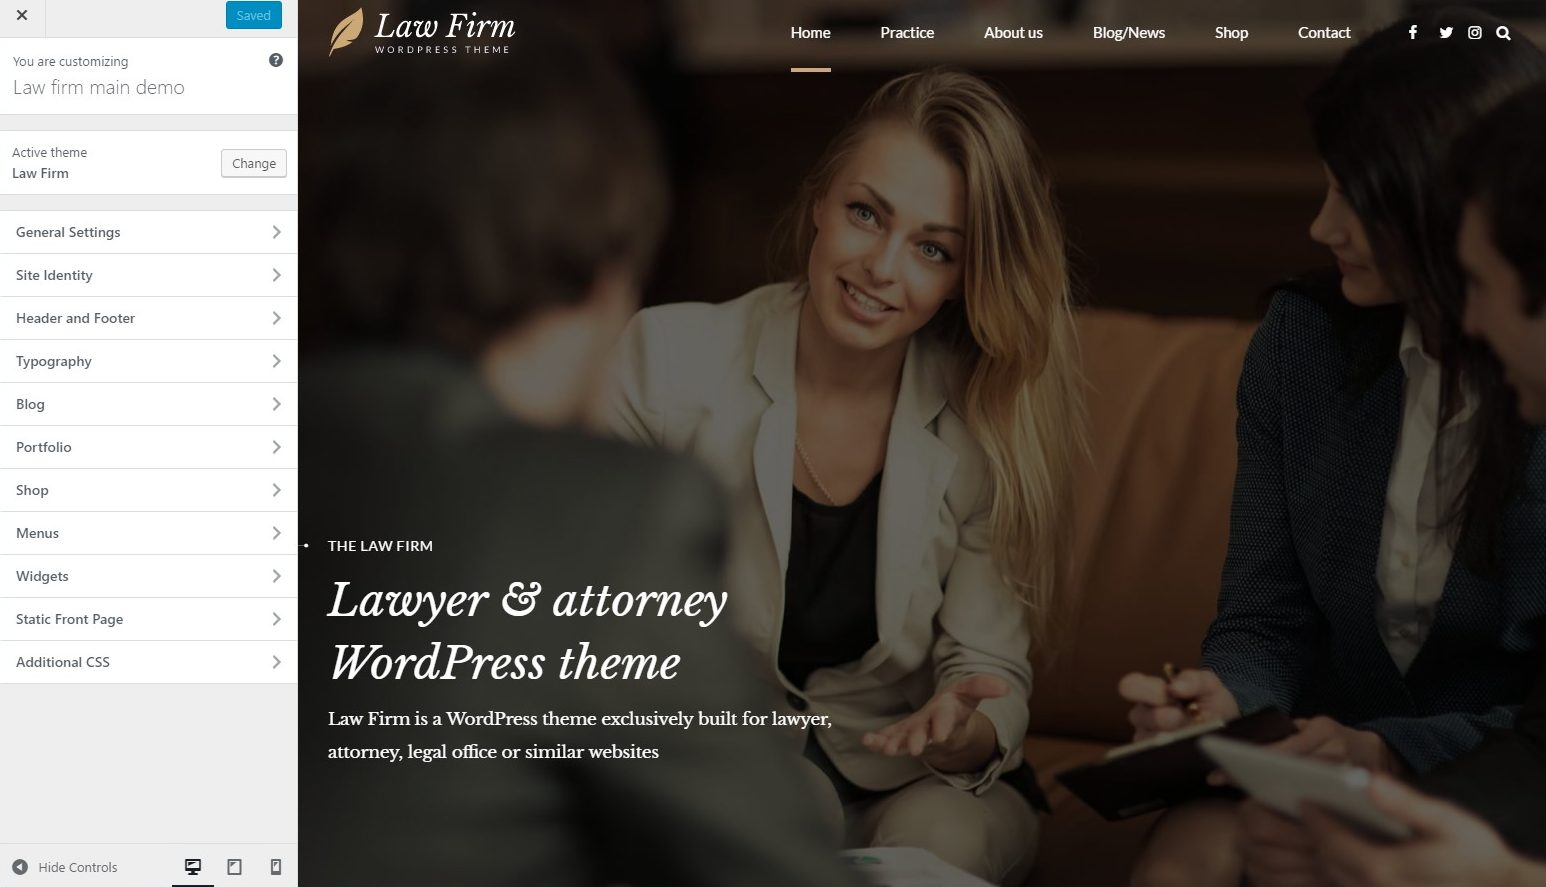 http://documentation.bold-themes.com/law-firm/wp-content/uploads/sites/15/2017/05/10-1-e1496309746201.jpg